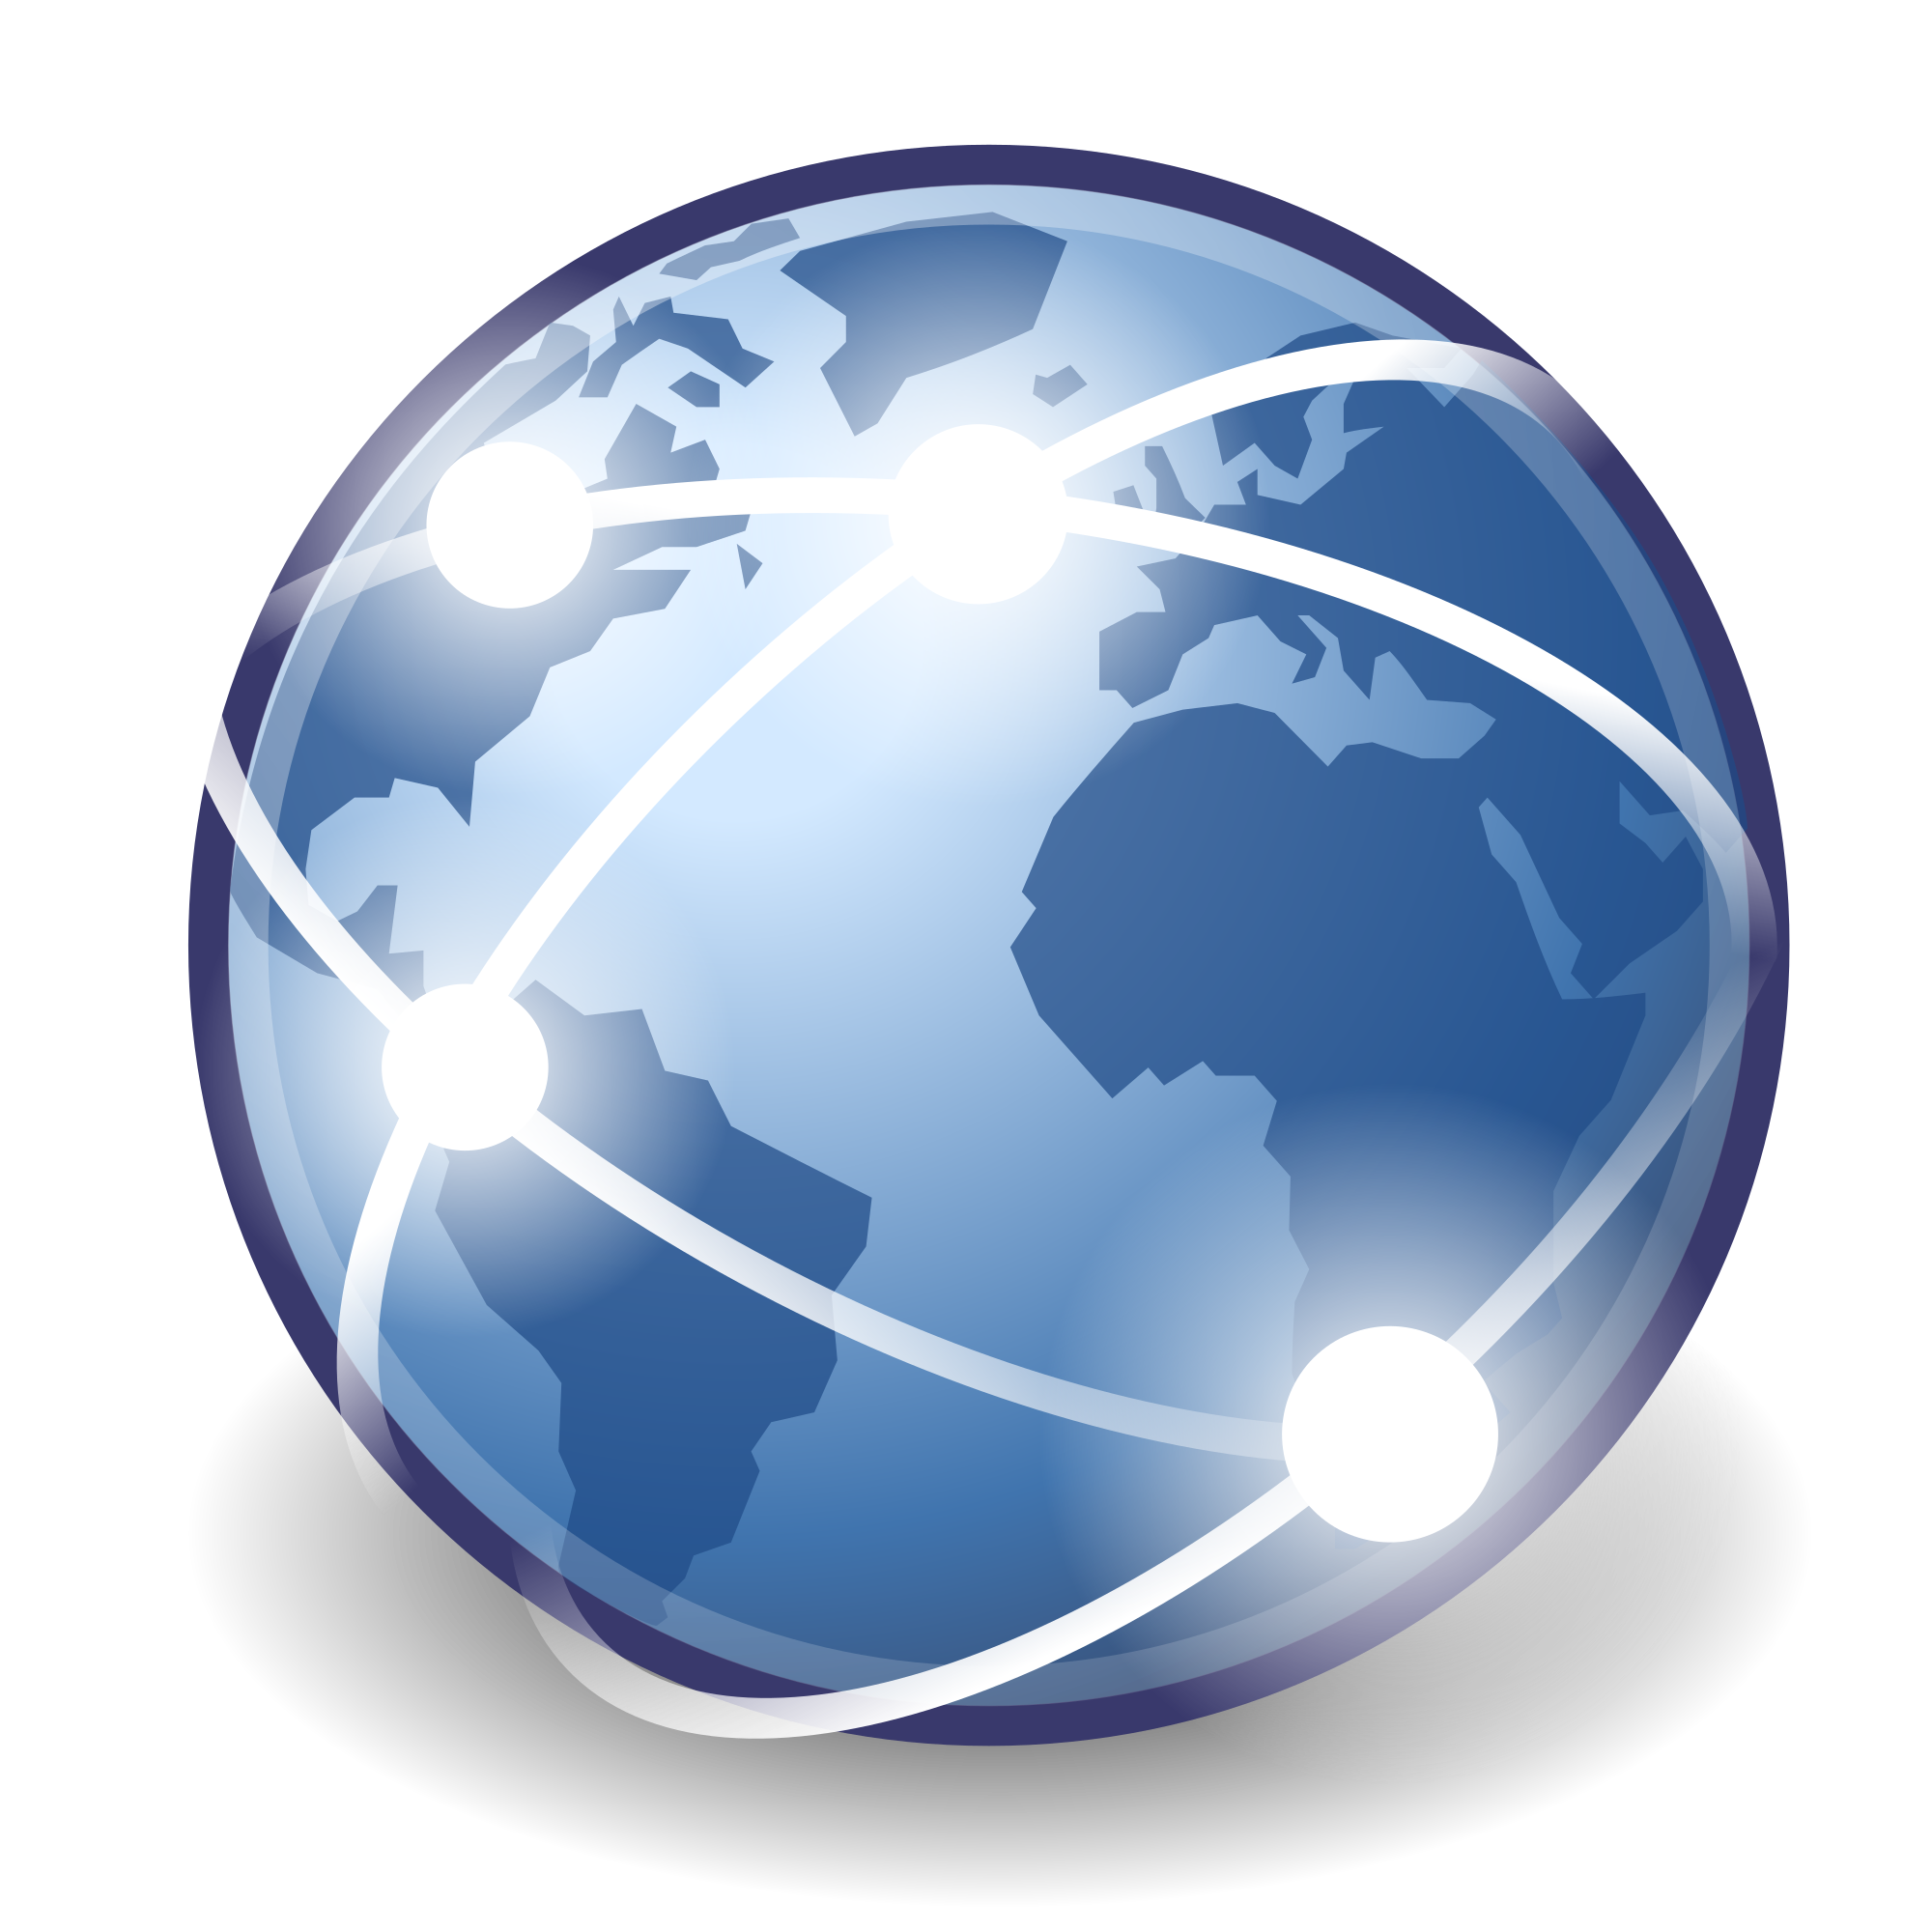 File:Applications-internet.svg - Wikimedia Commons